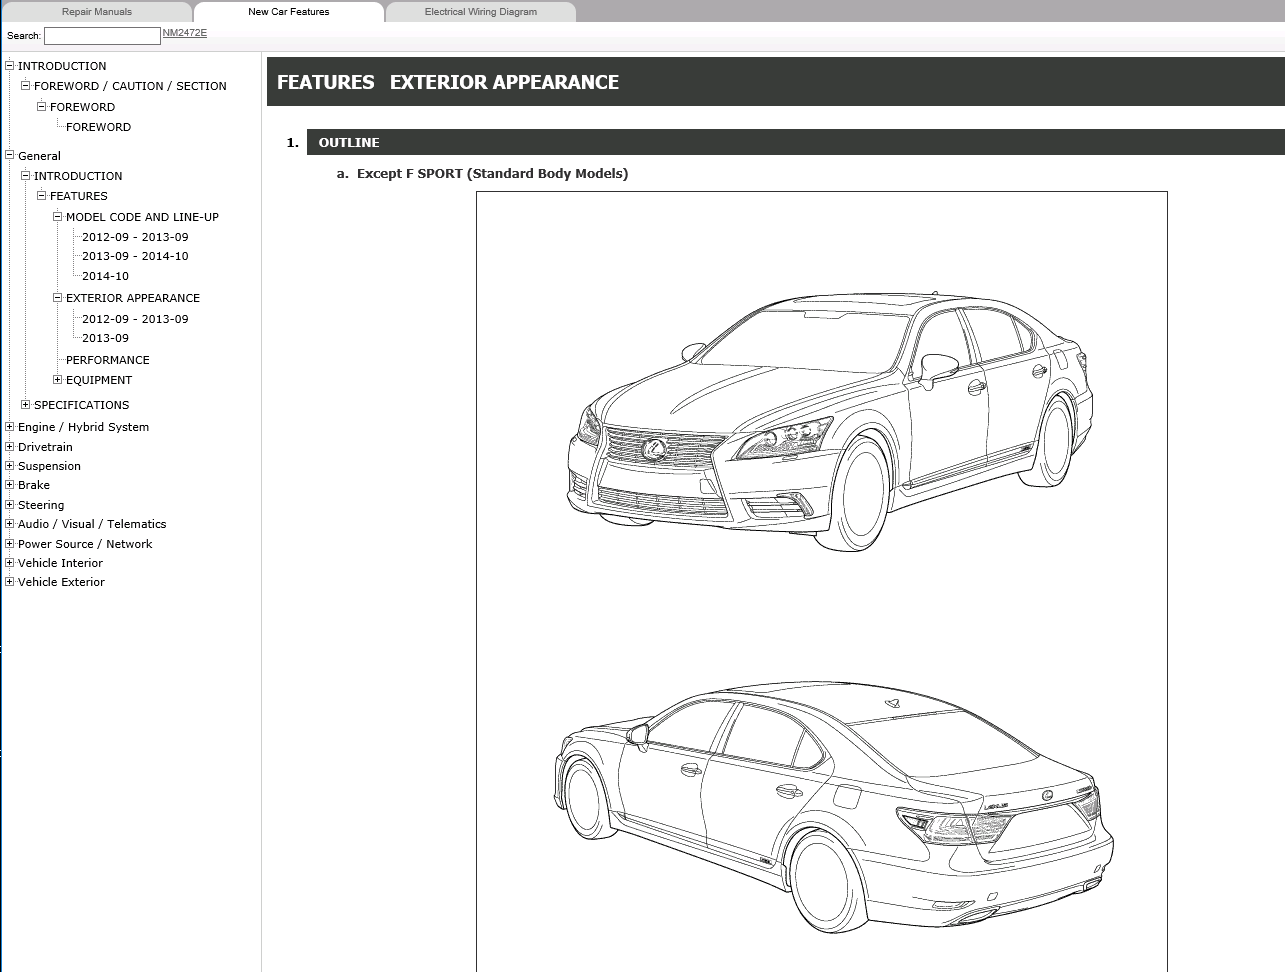 Lexus Ls600h Repair Manual 092012 082015 Electrical Wiring Diagram Manuals 2